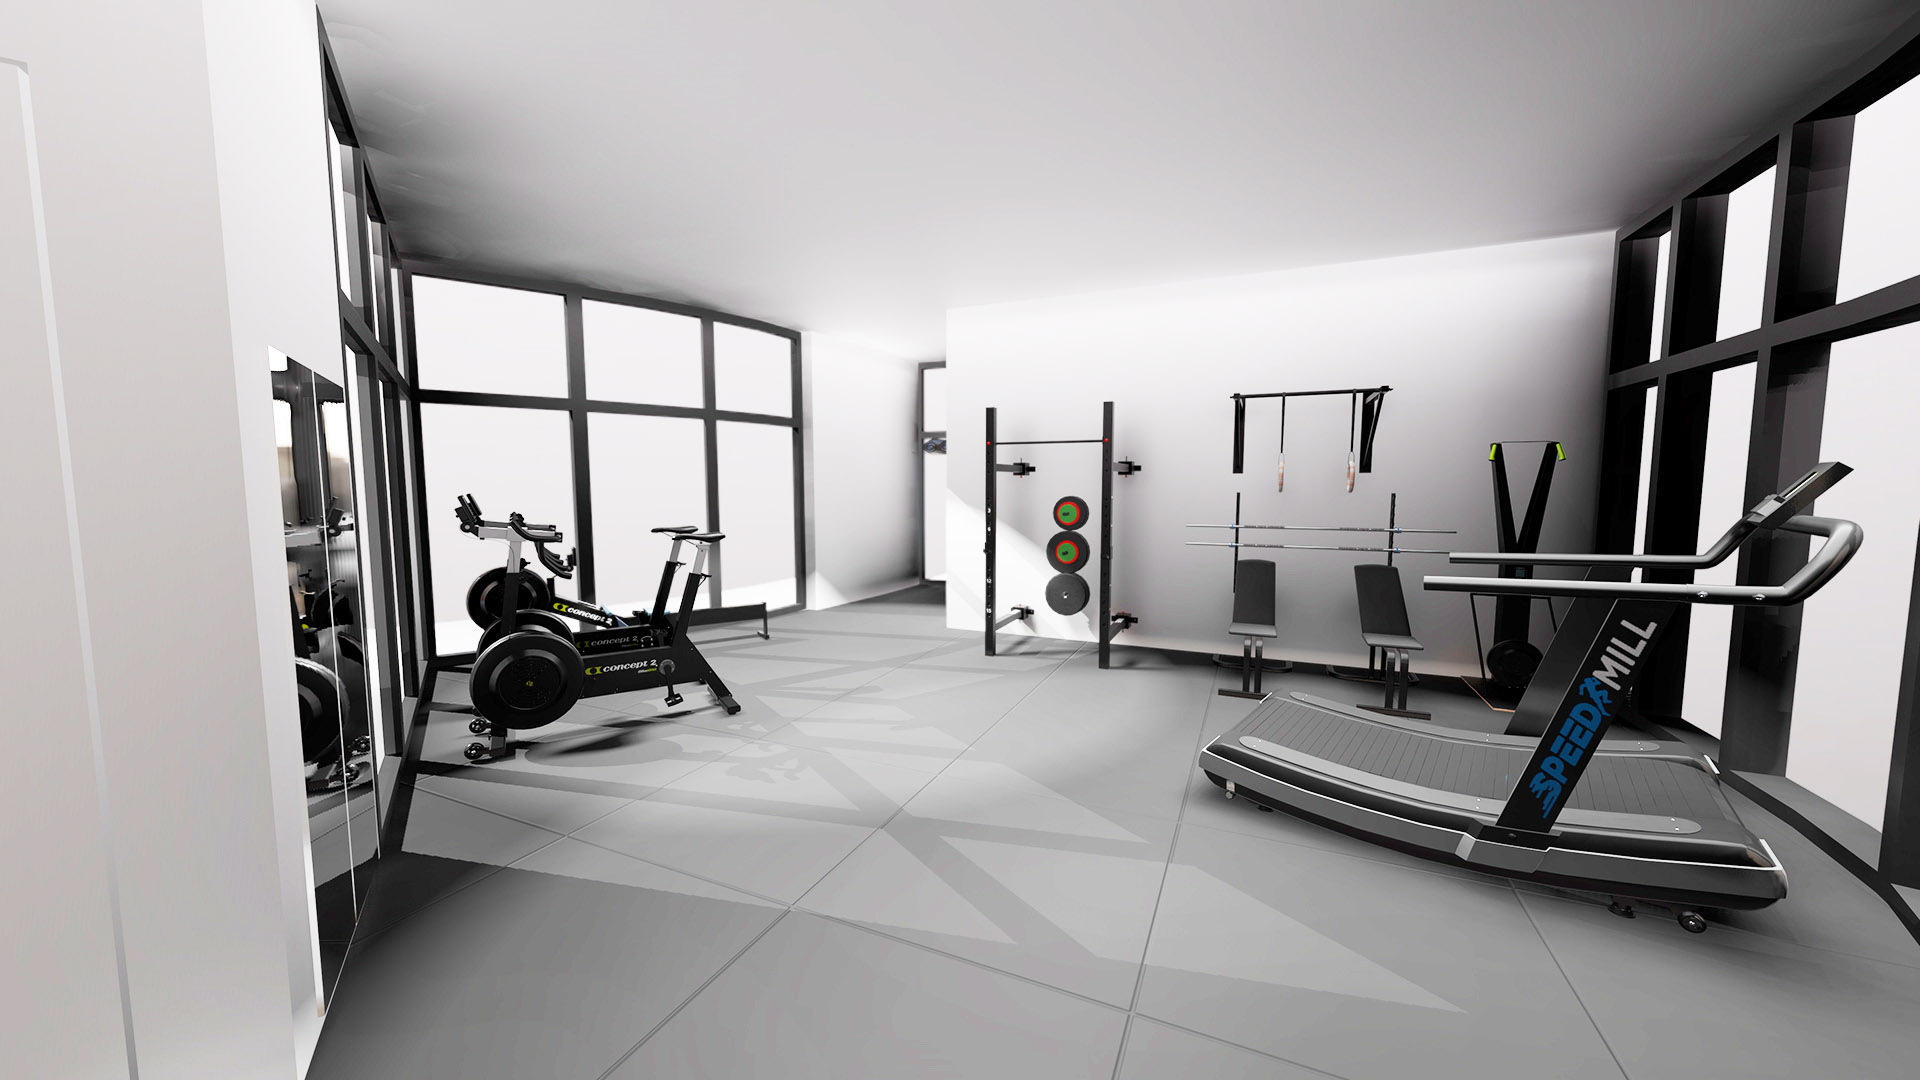 Rebel 3d gym layout for a boutique style gym